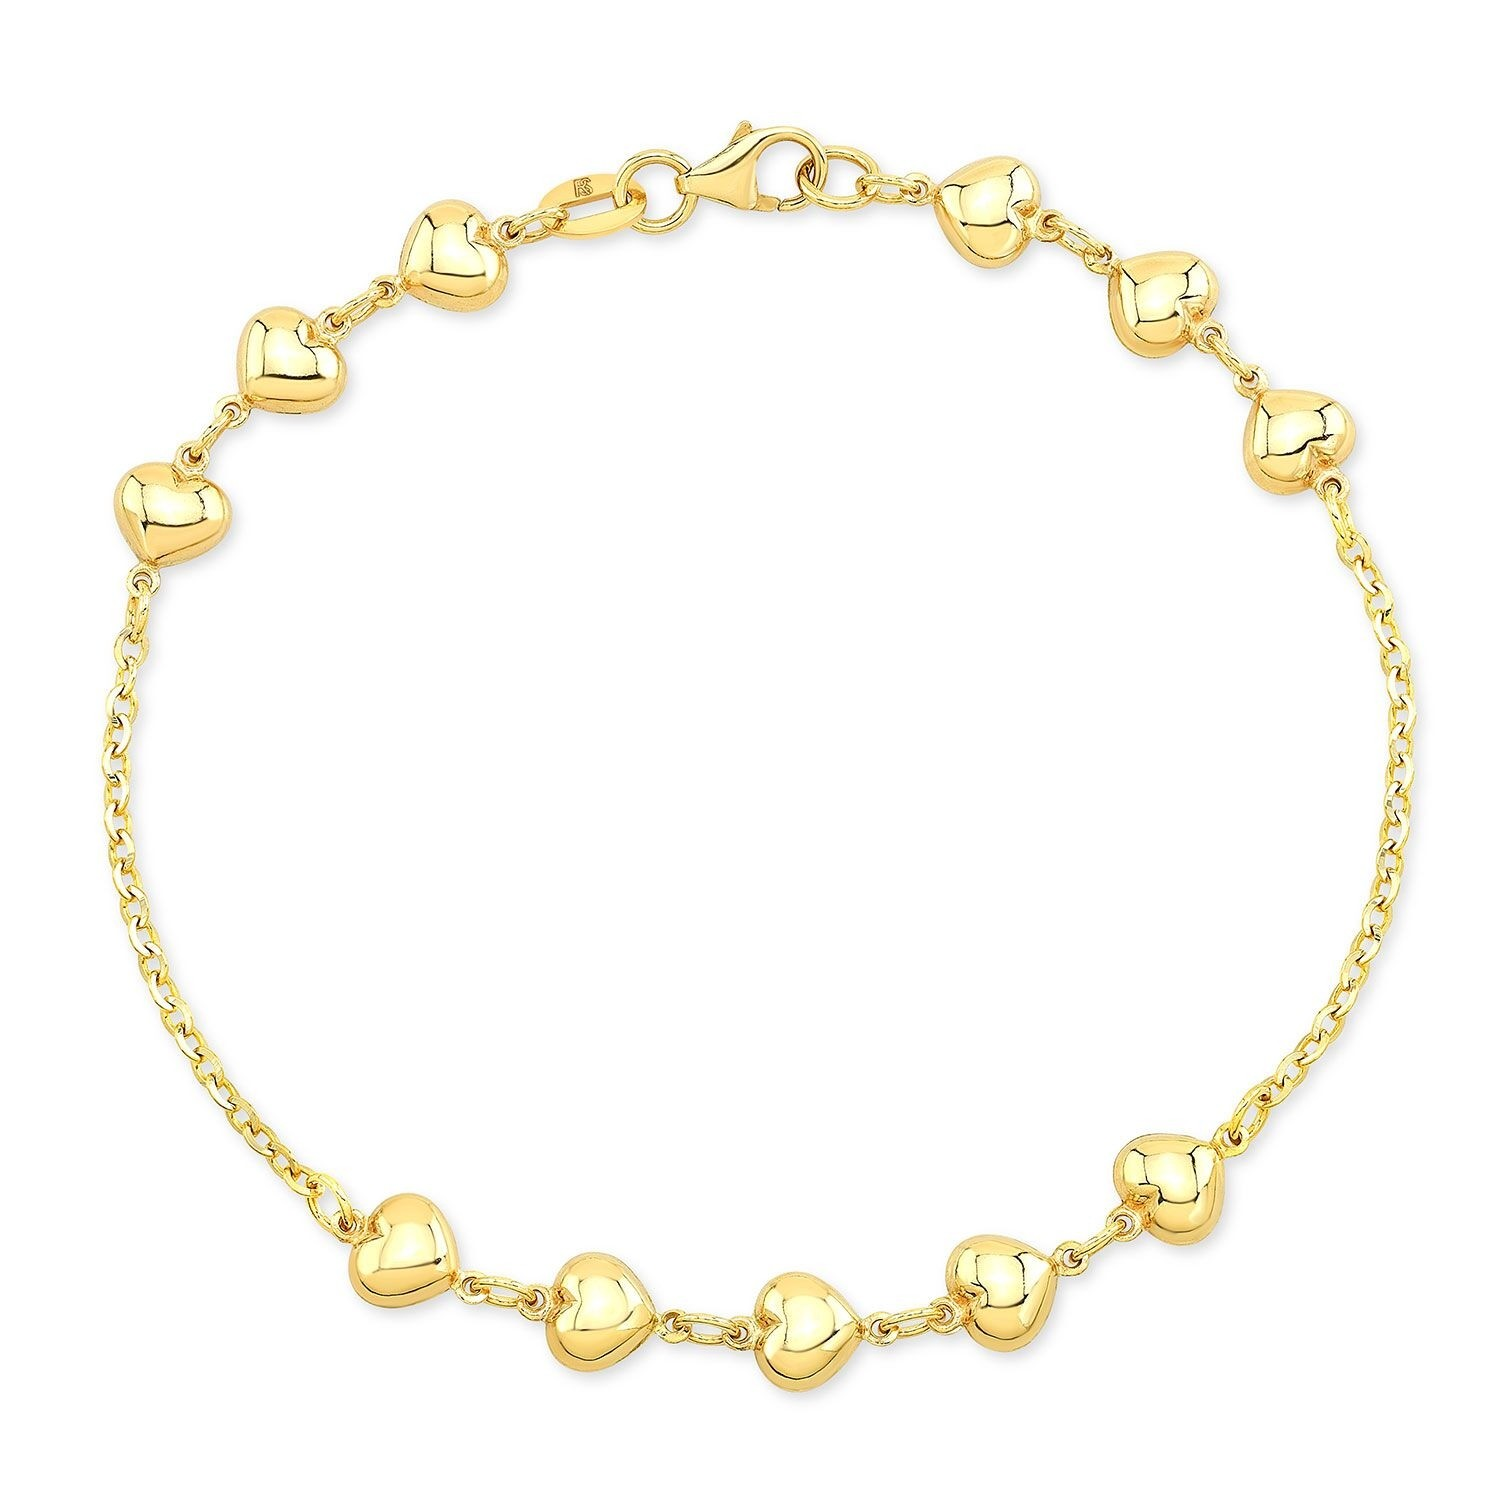 14k Yellow Gold 11 Puffed Heart Bracelet